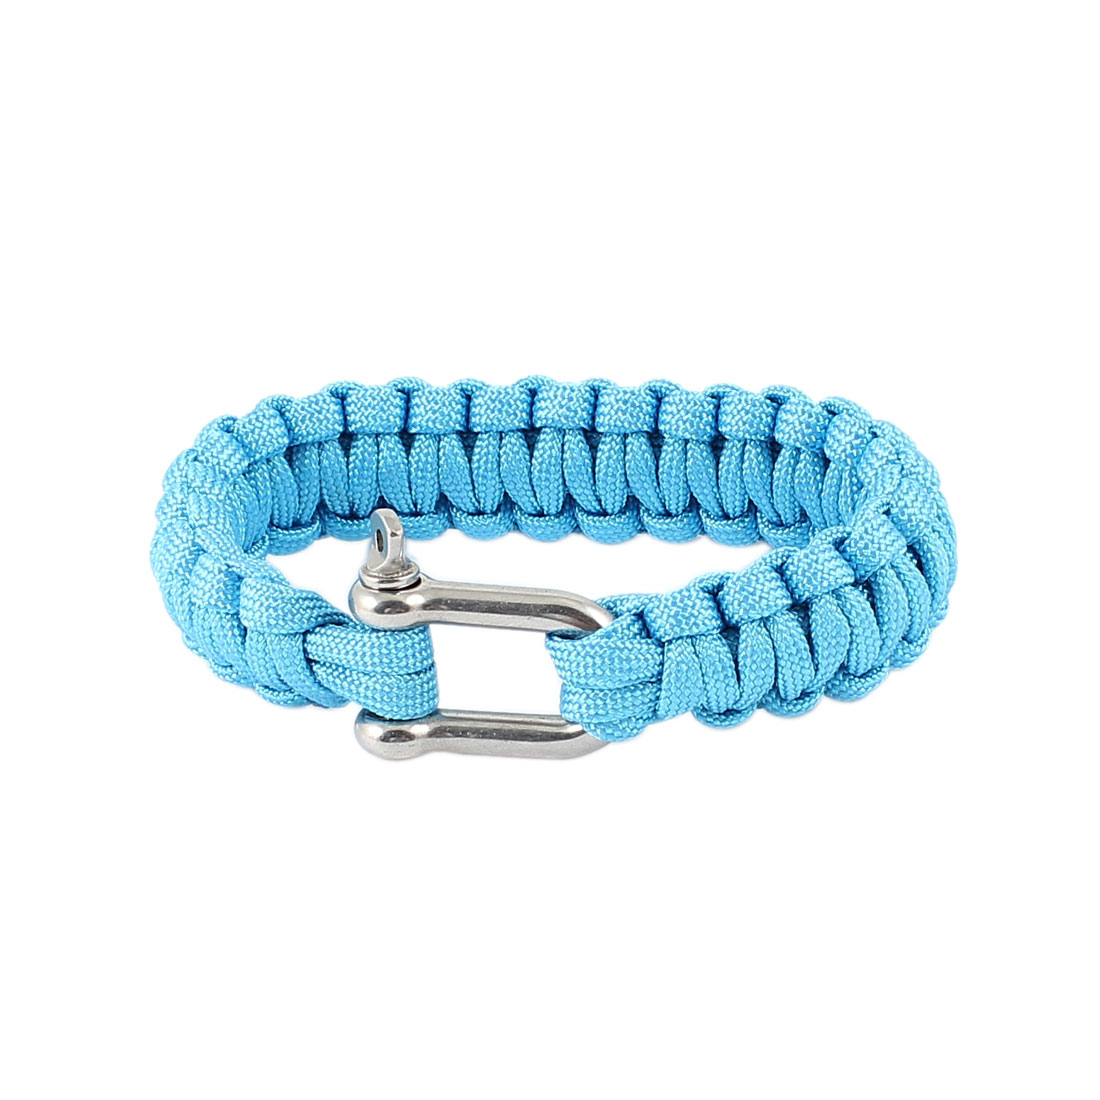 Outdoor Camping Blue Nylon Weave Textured Self-Rescue Cord Survival Bracelet